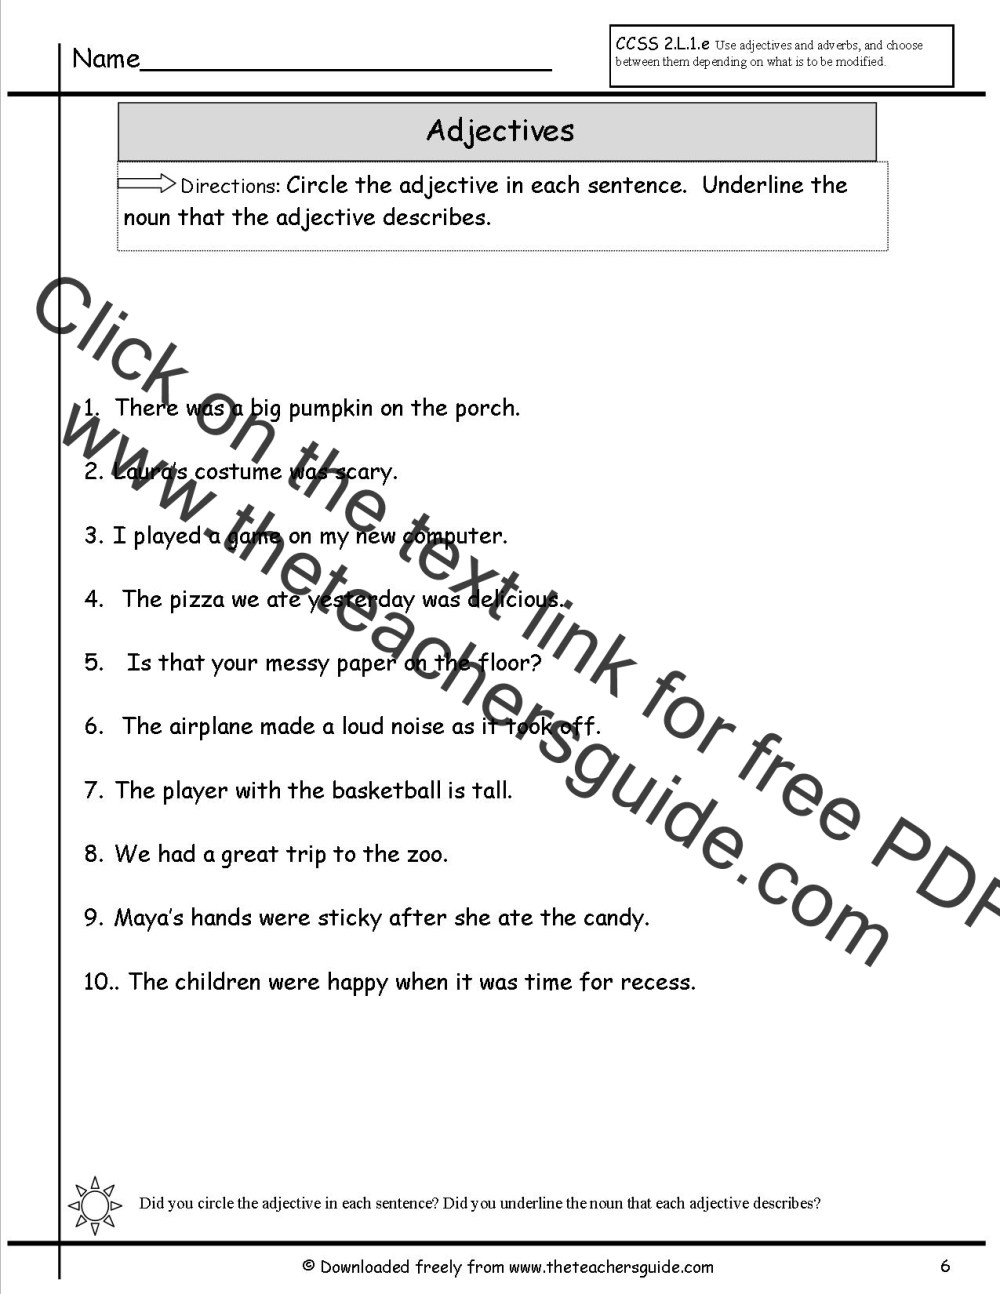 medium resolution of Worksheet On Adjectives For Grade 7 With Answers   Printable Worksheets and  Activities for Teachers